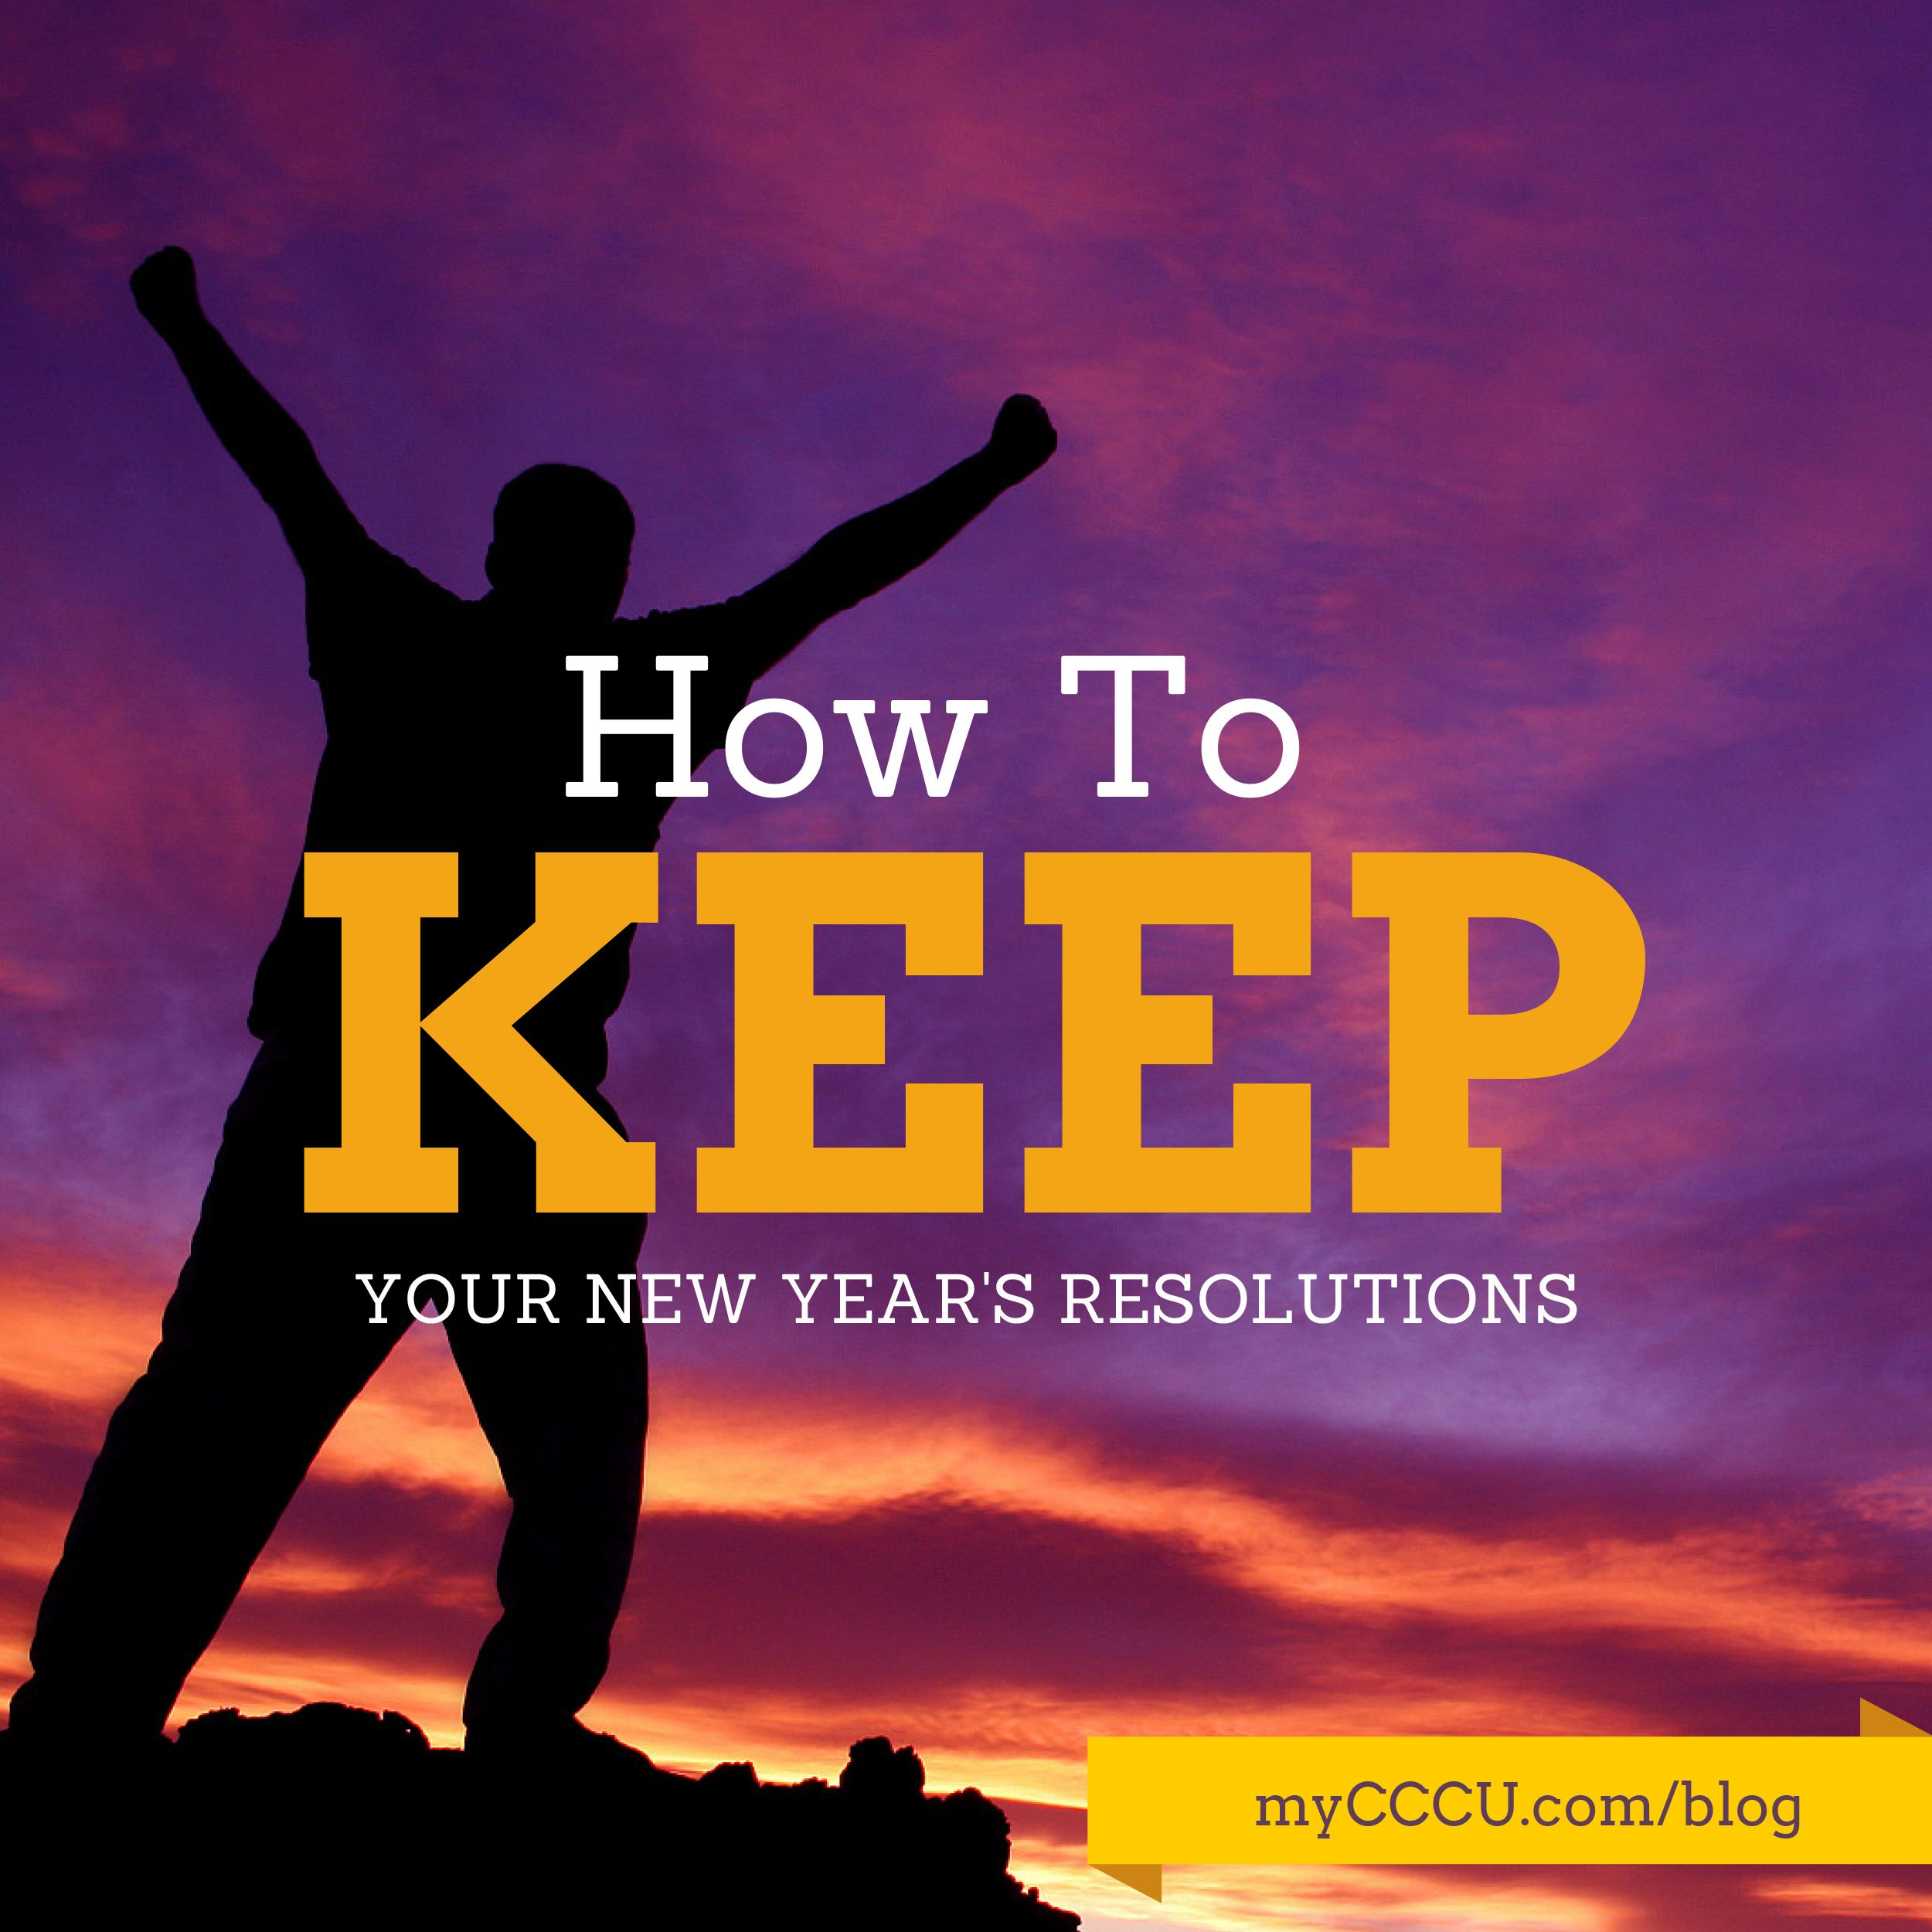 Struggling with your New Year's resolutions? Want to know how you can keep them?